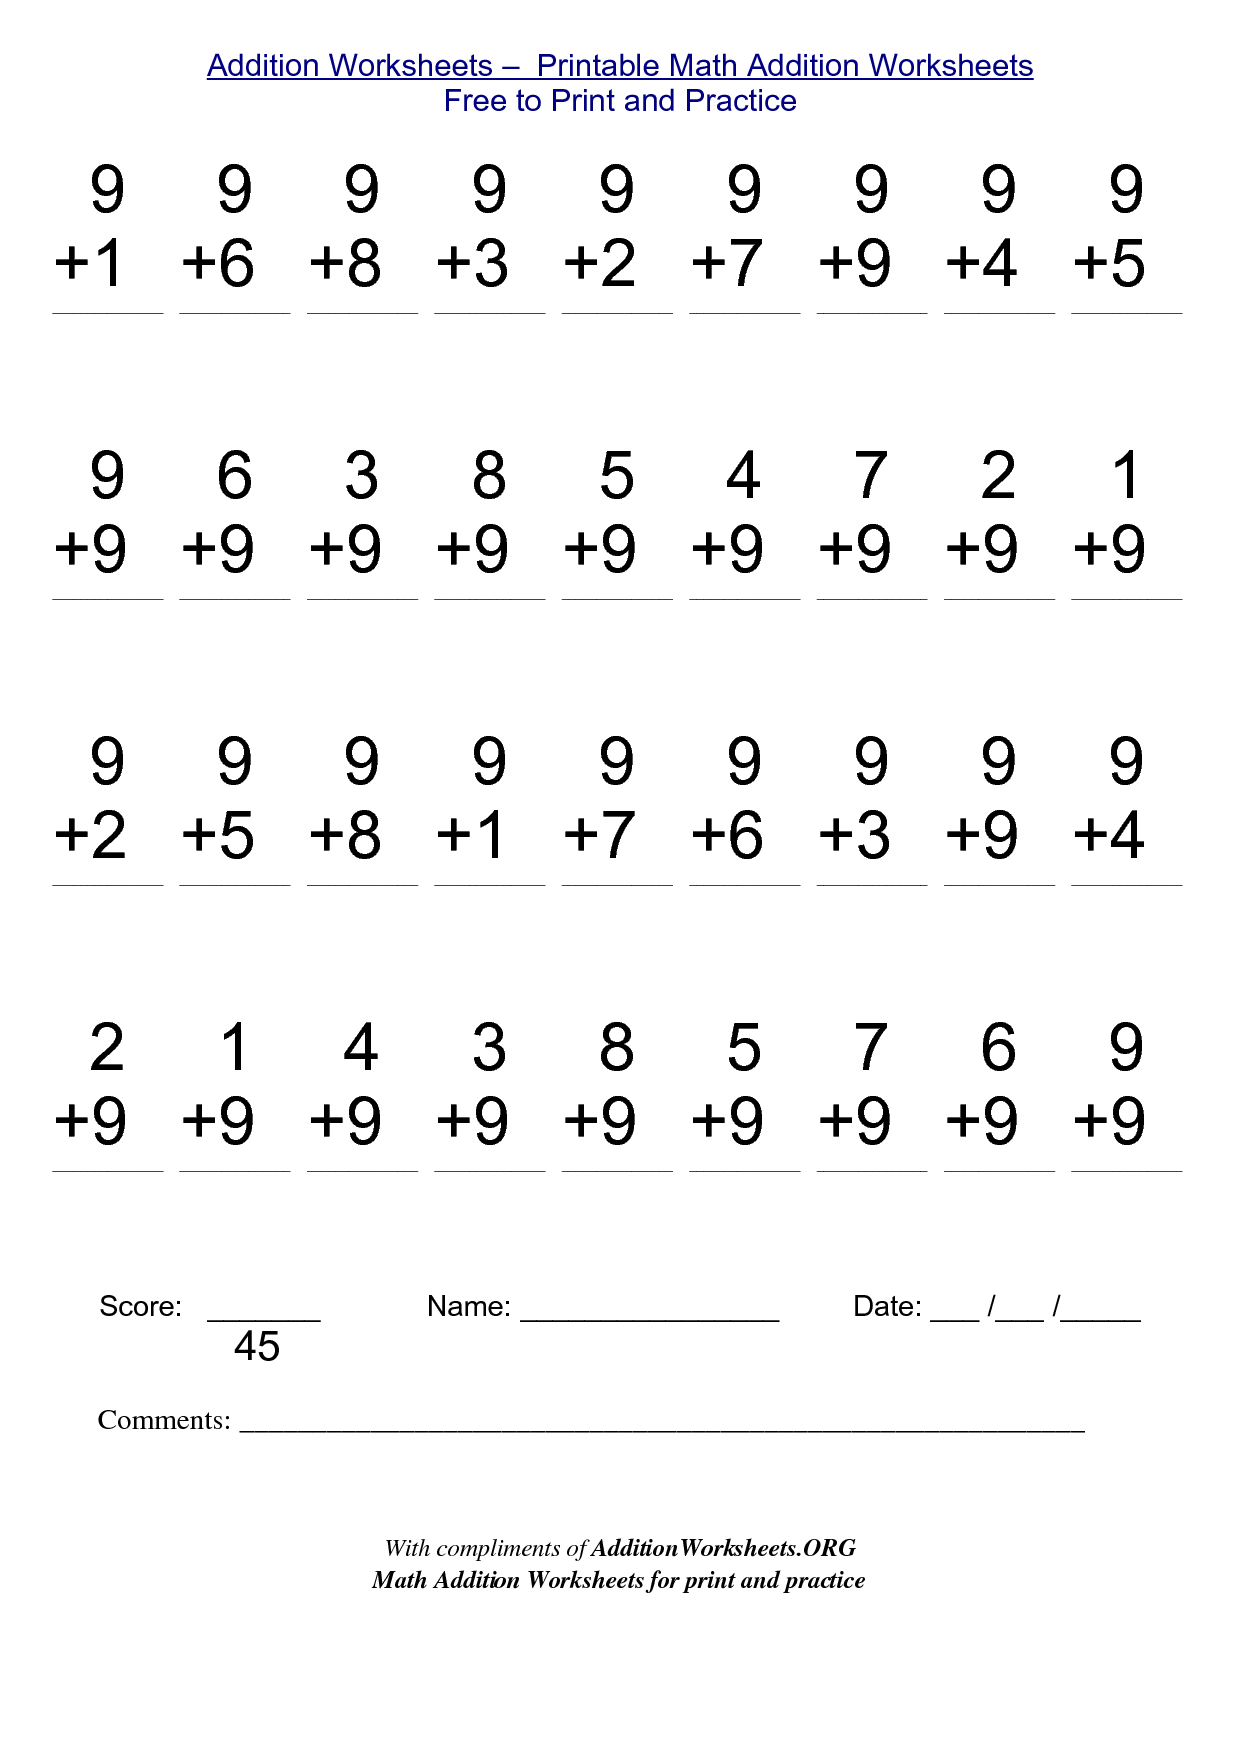 Math Worksheets for Free to Print Alot ME – Free Addition Worksheets for 2nd Grade